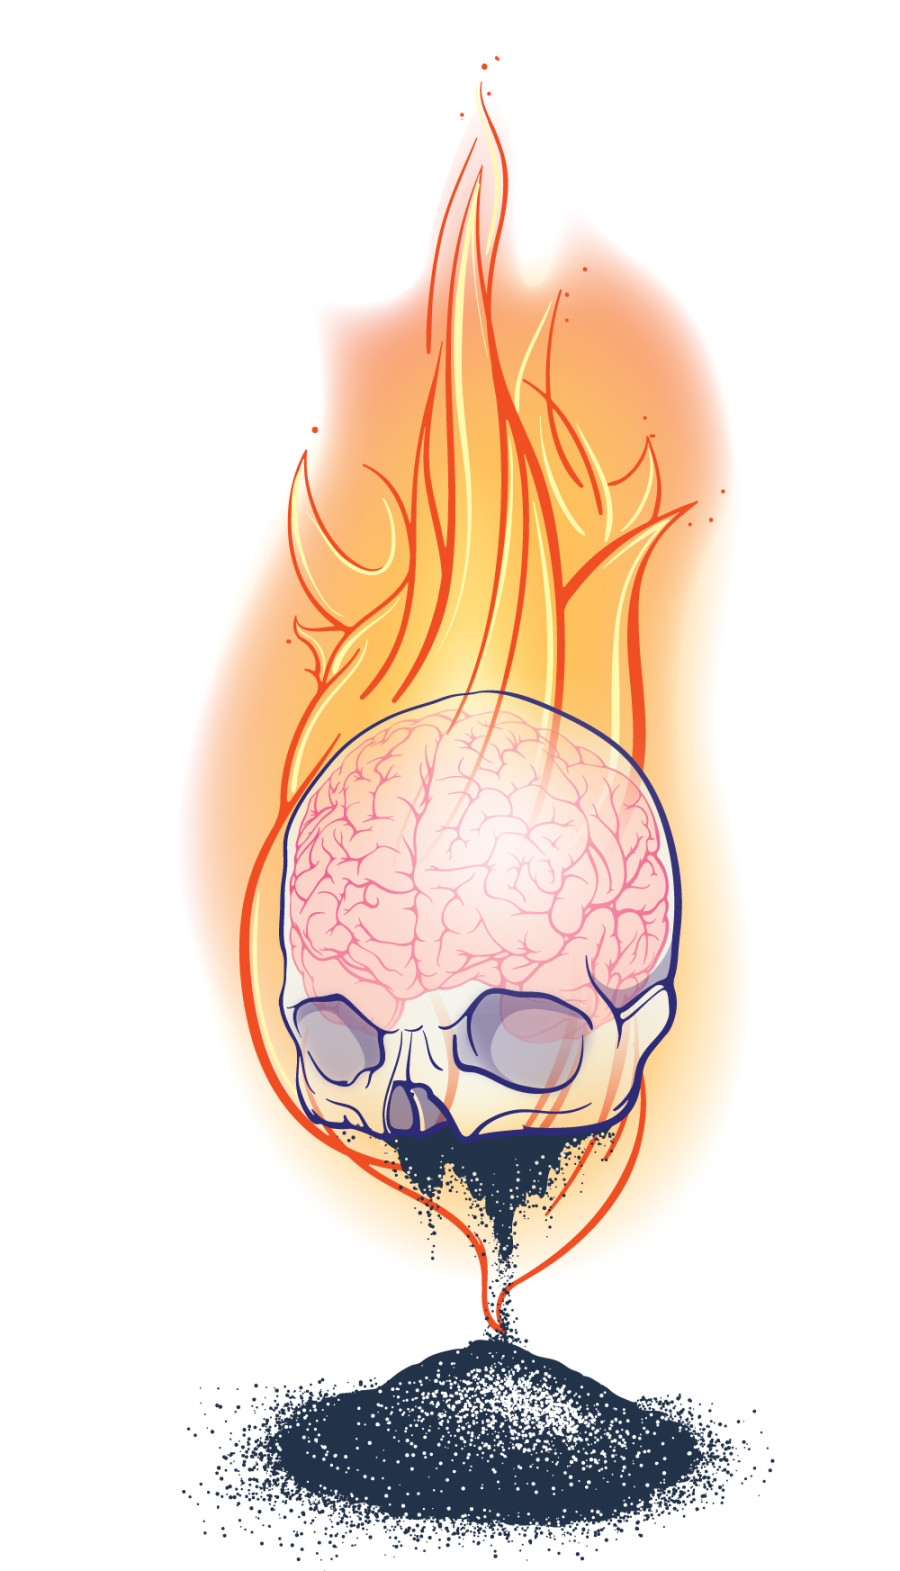 In progress color illustration of a skull on fire. Brain is visible. Pile of ashes lies beneath skull.